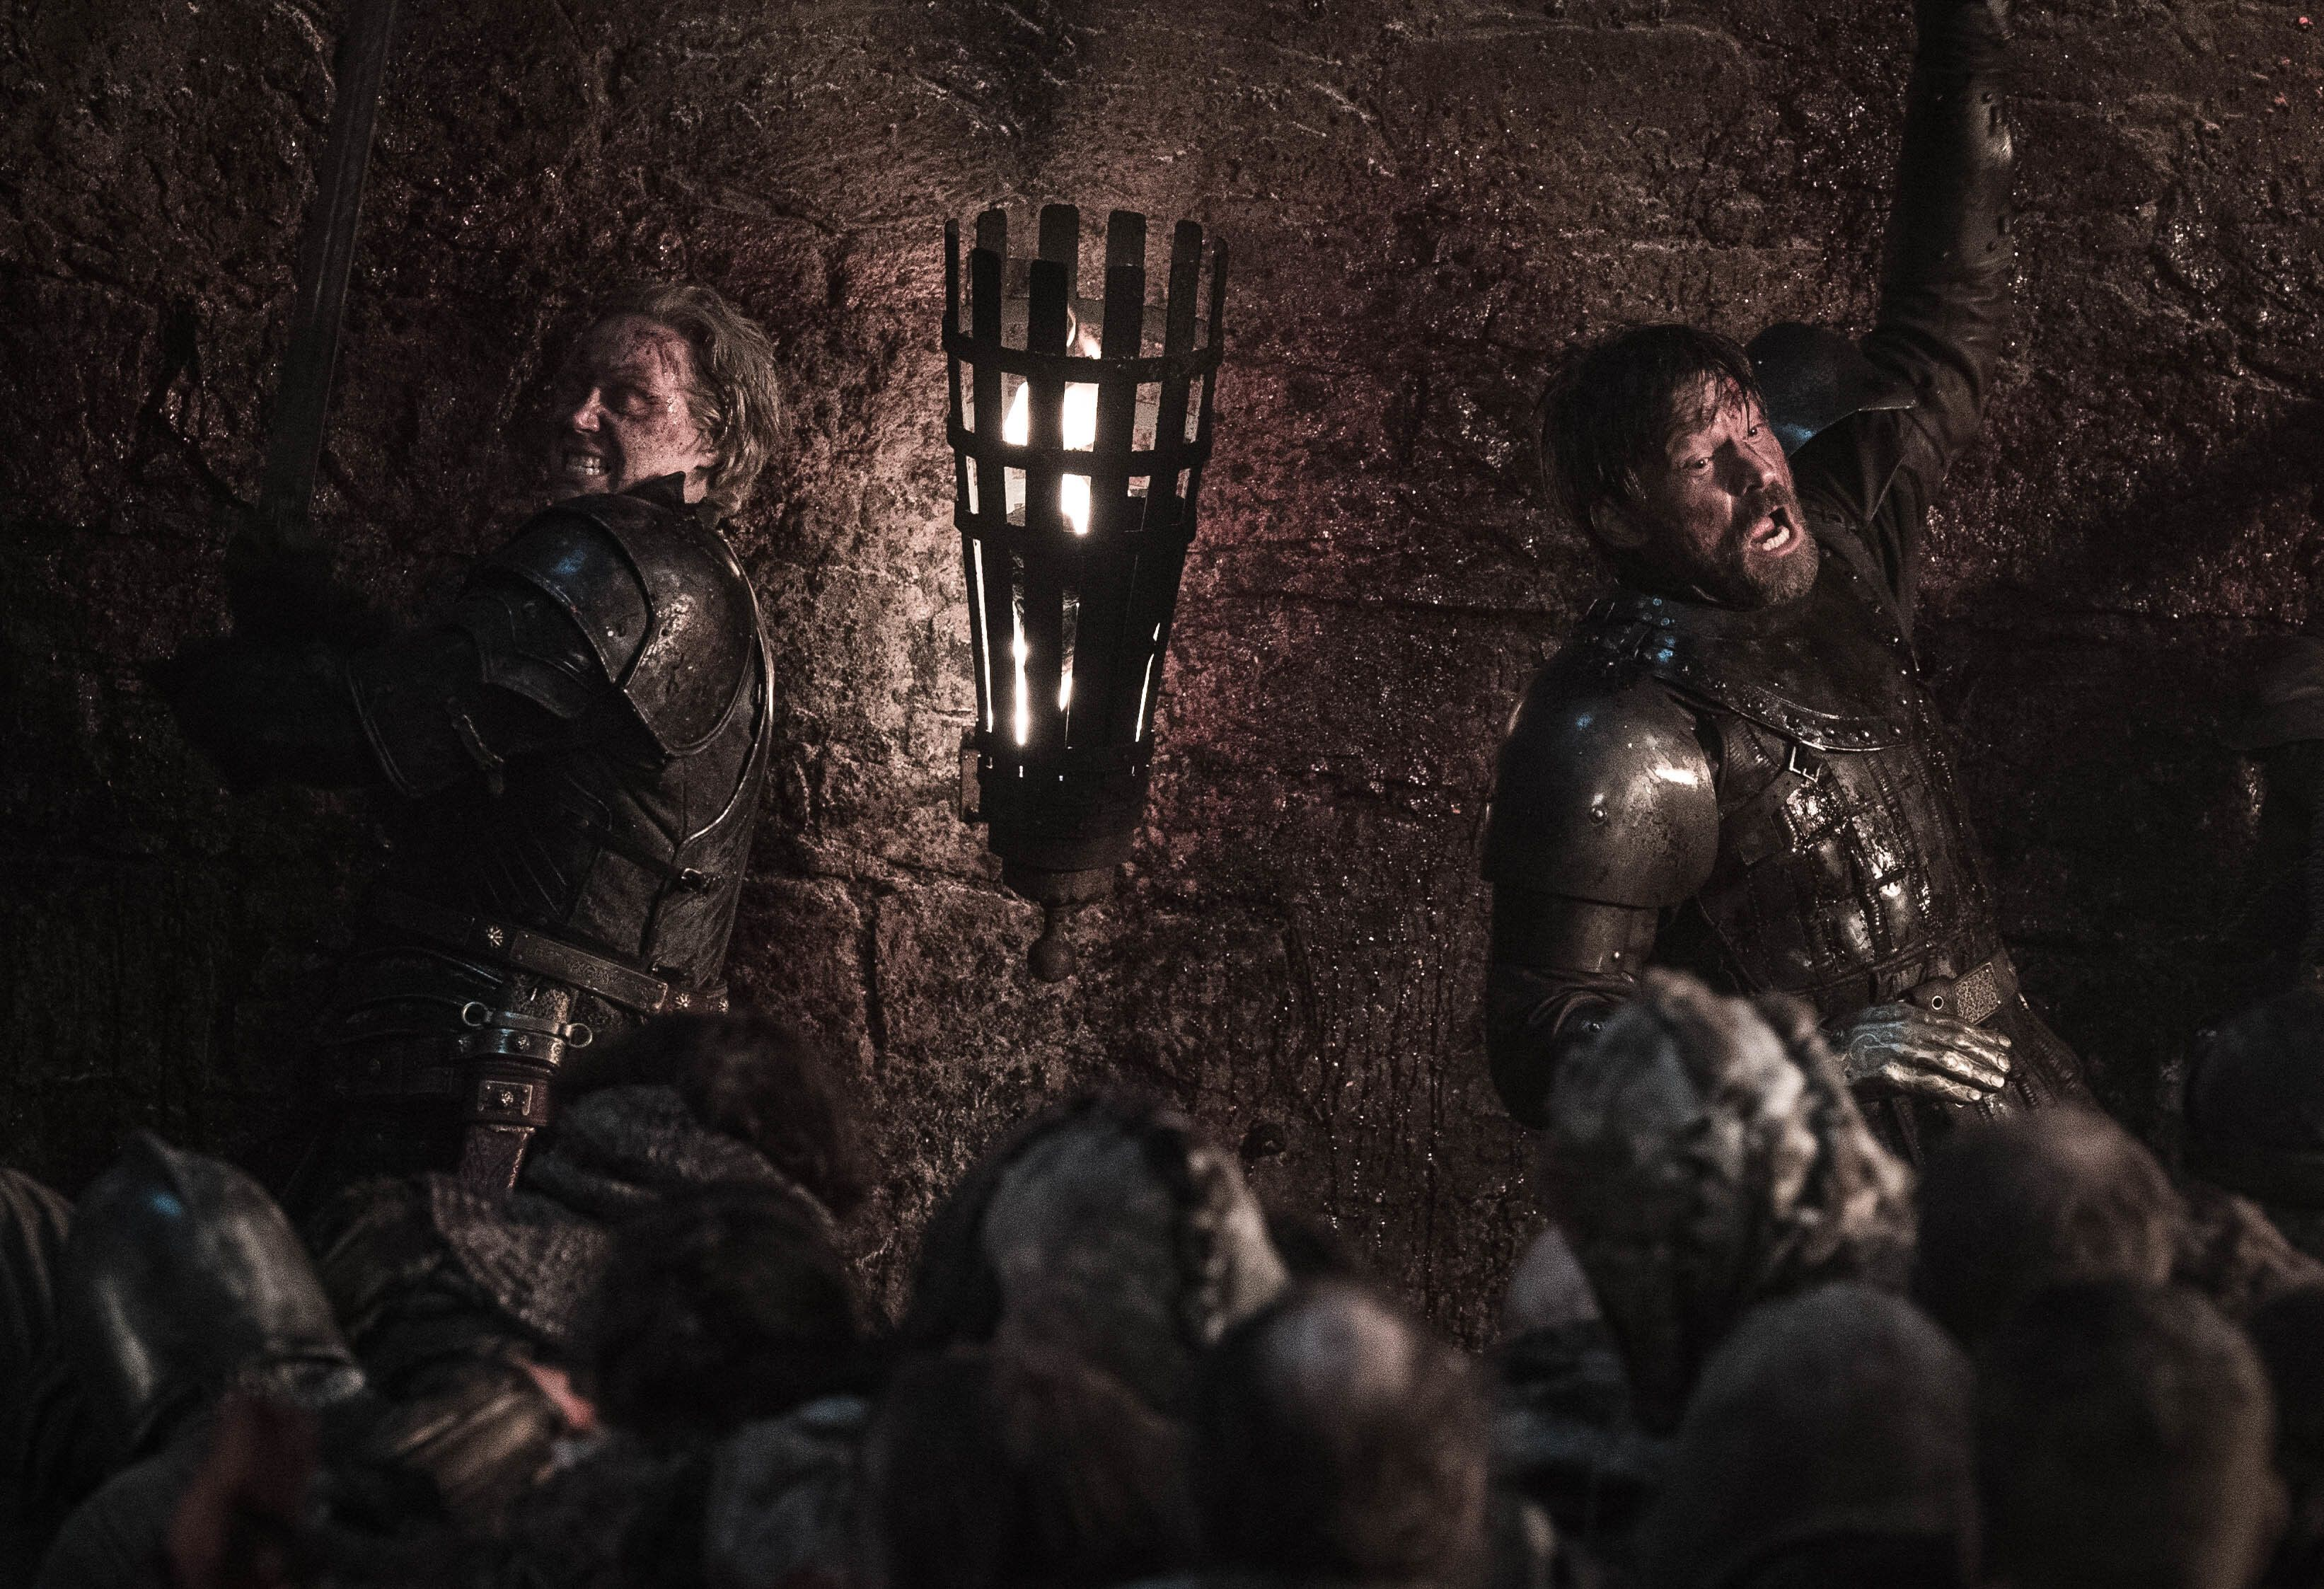 Brienne and Jaime fighting wights in Episode 3.